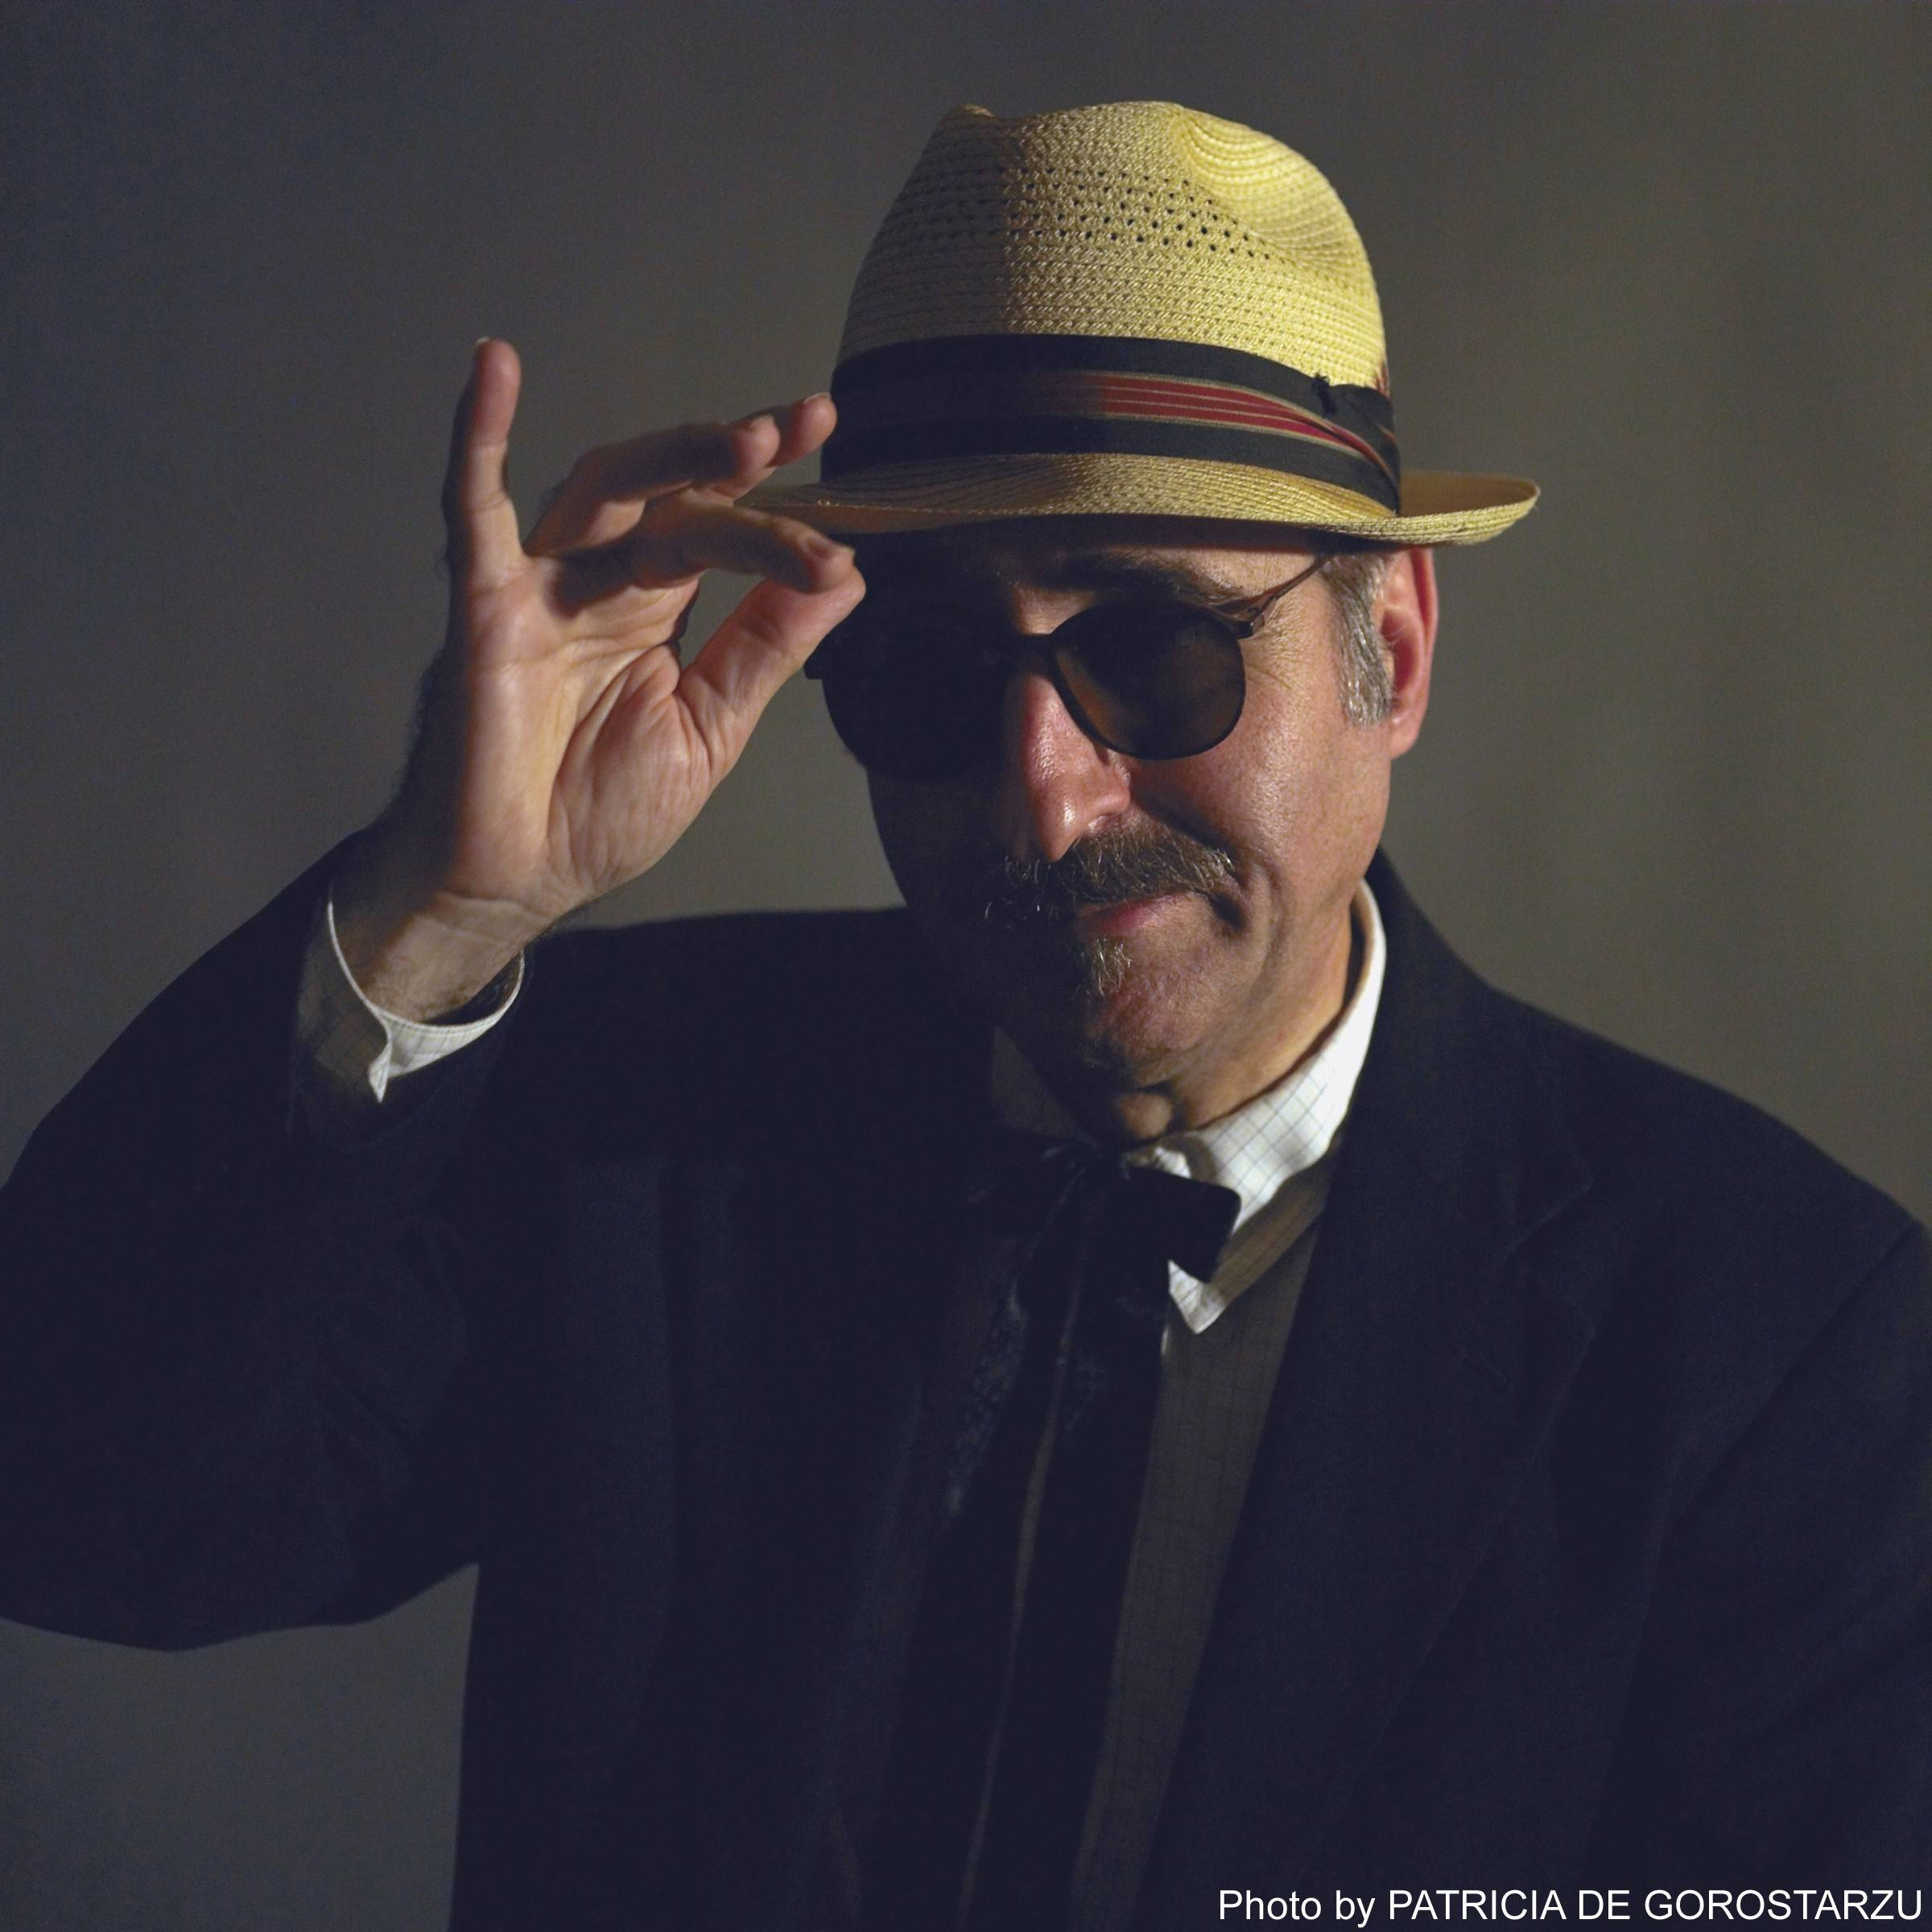 An Evening with Leon Redbone is at 7 p.m. Saturday, June 21, at the Metropolis Performing Arts Centre in Arlington Heights.